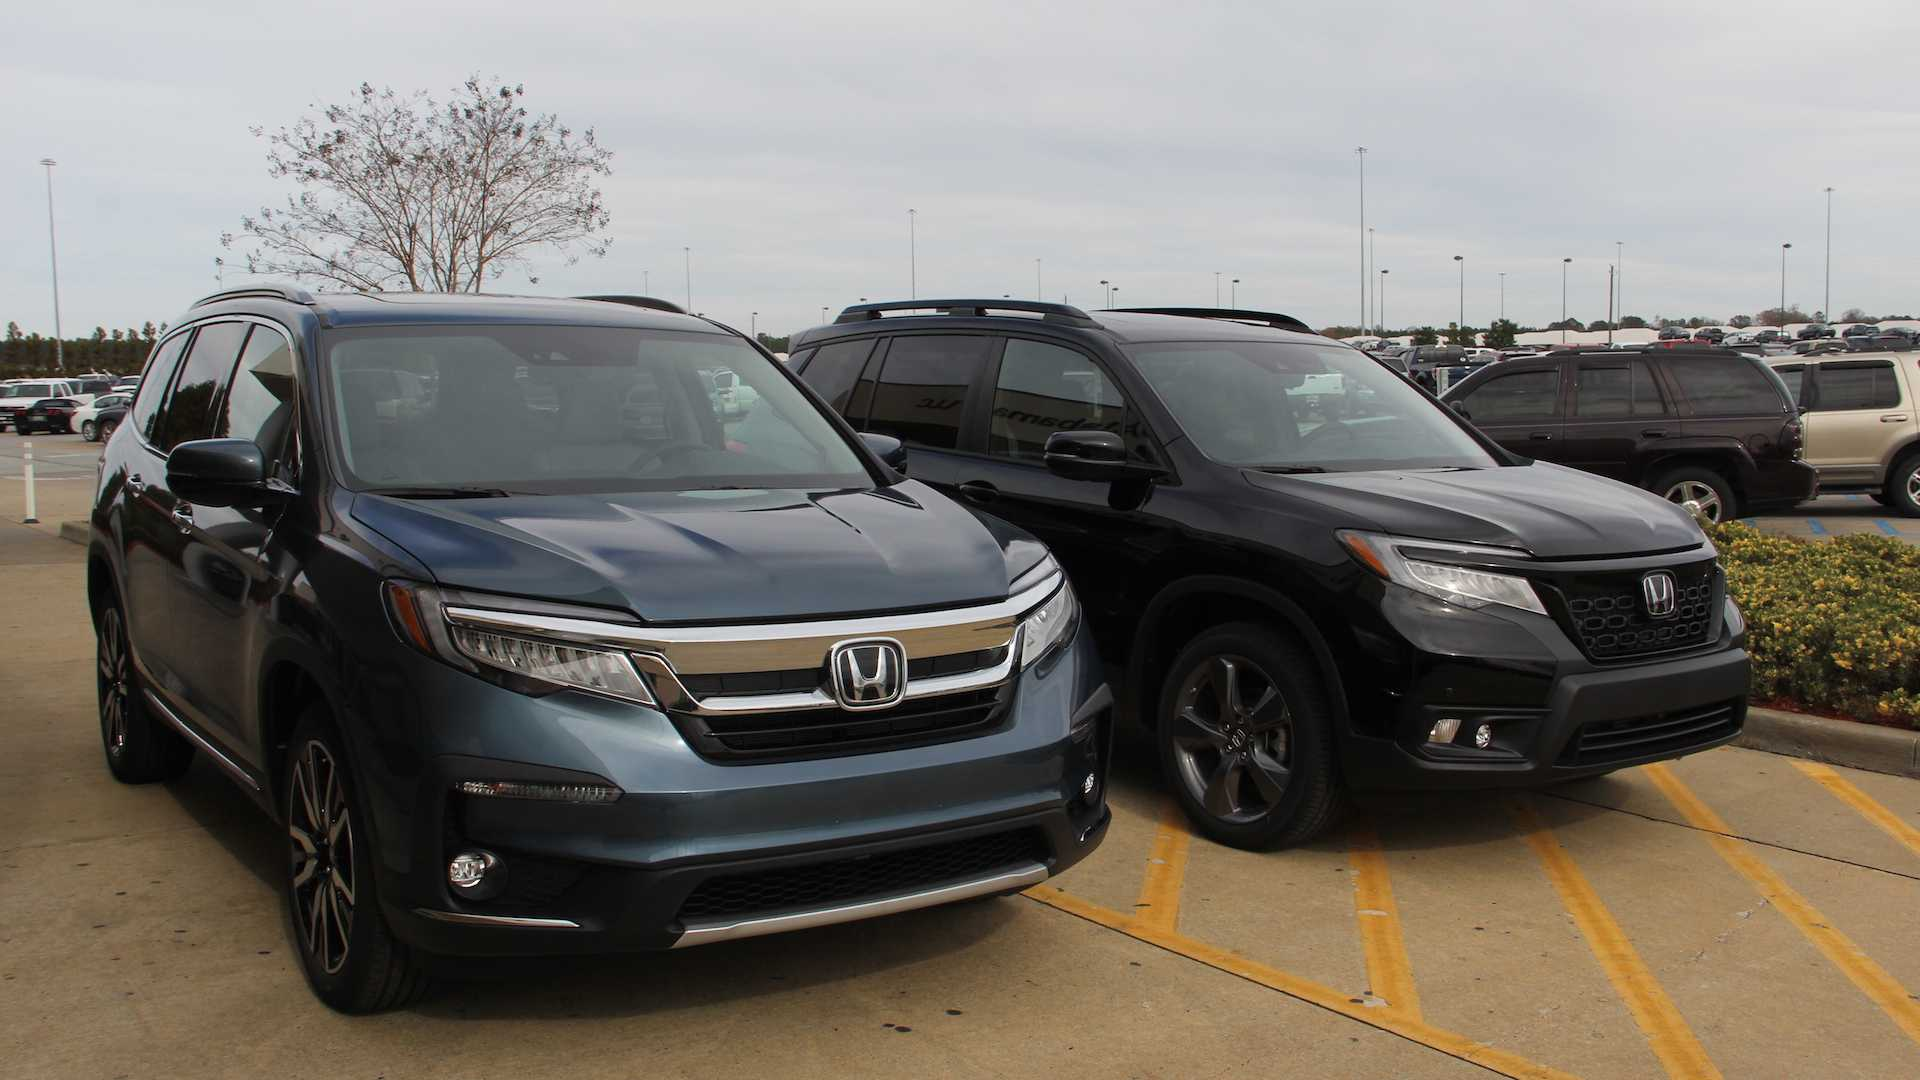 2019-honda-passport-vs-2019-honda-pilot-so-sanh-3.jpg